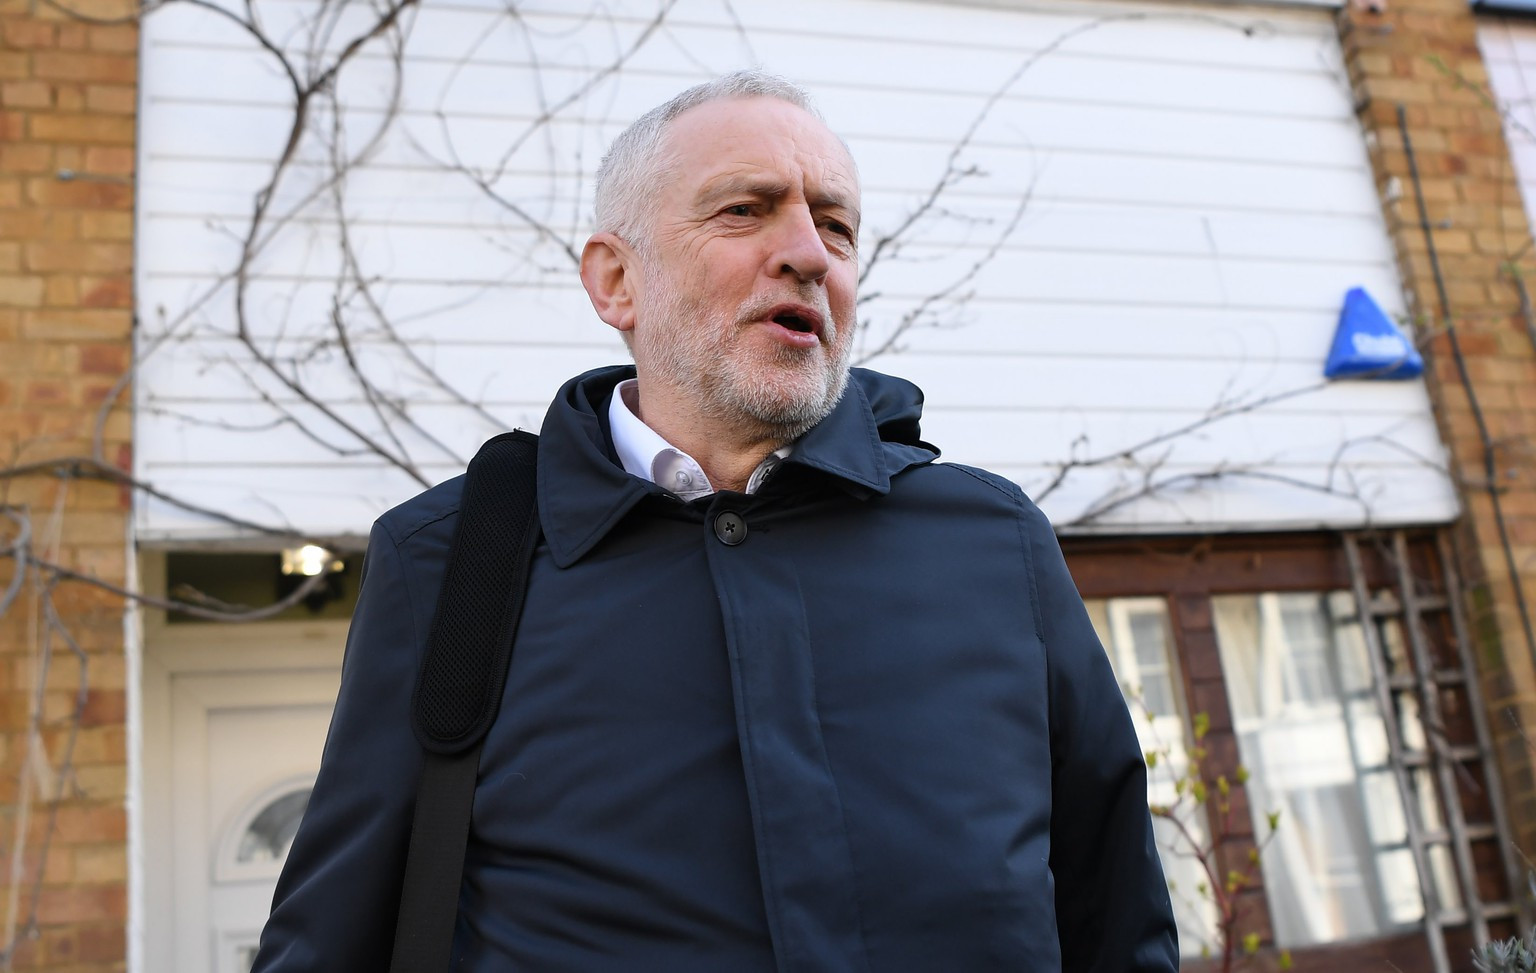 epa06629926 Britain's opposition Labour Party Leader Jeremy Corbyn leaves his home in north London, Britain, 26 March 2018. Corbyn is facing criticism after Jewish Leadership Council has described him a 'figurehead' for antisemitism.  EPA/NEIL HALL